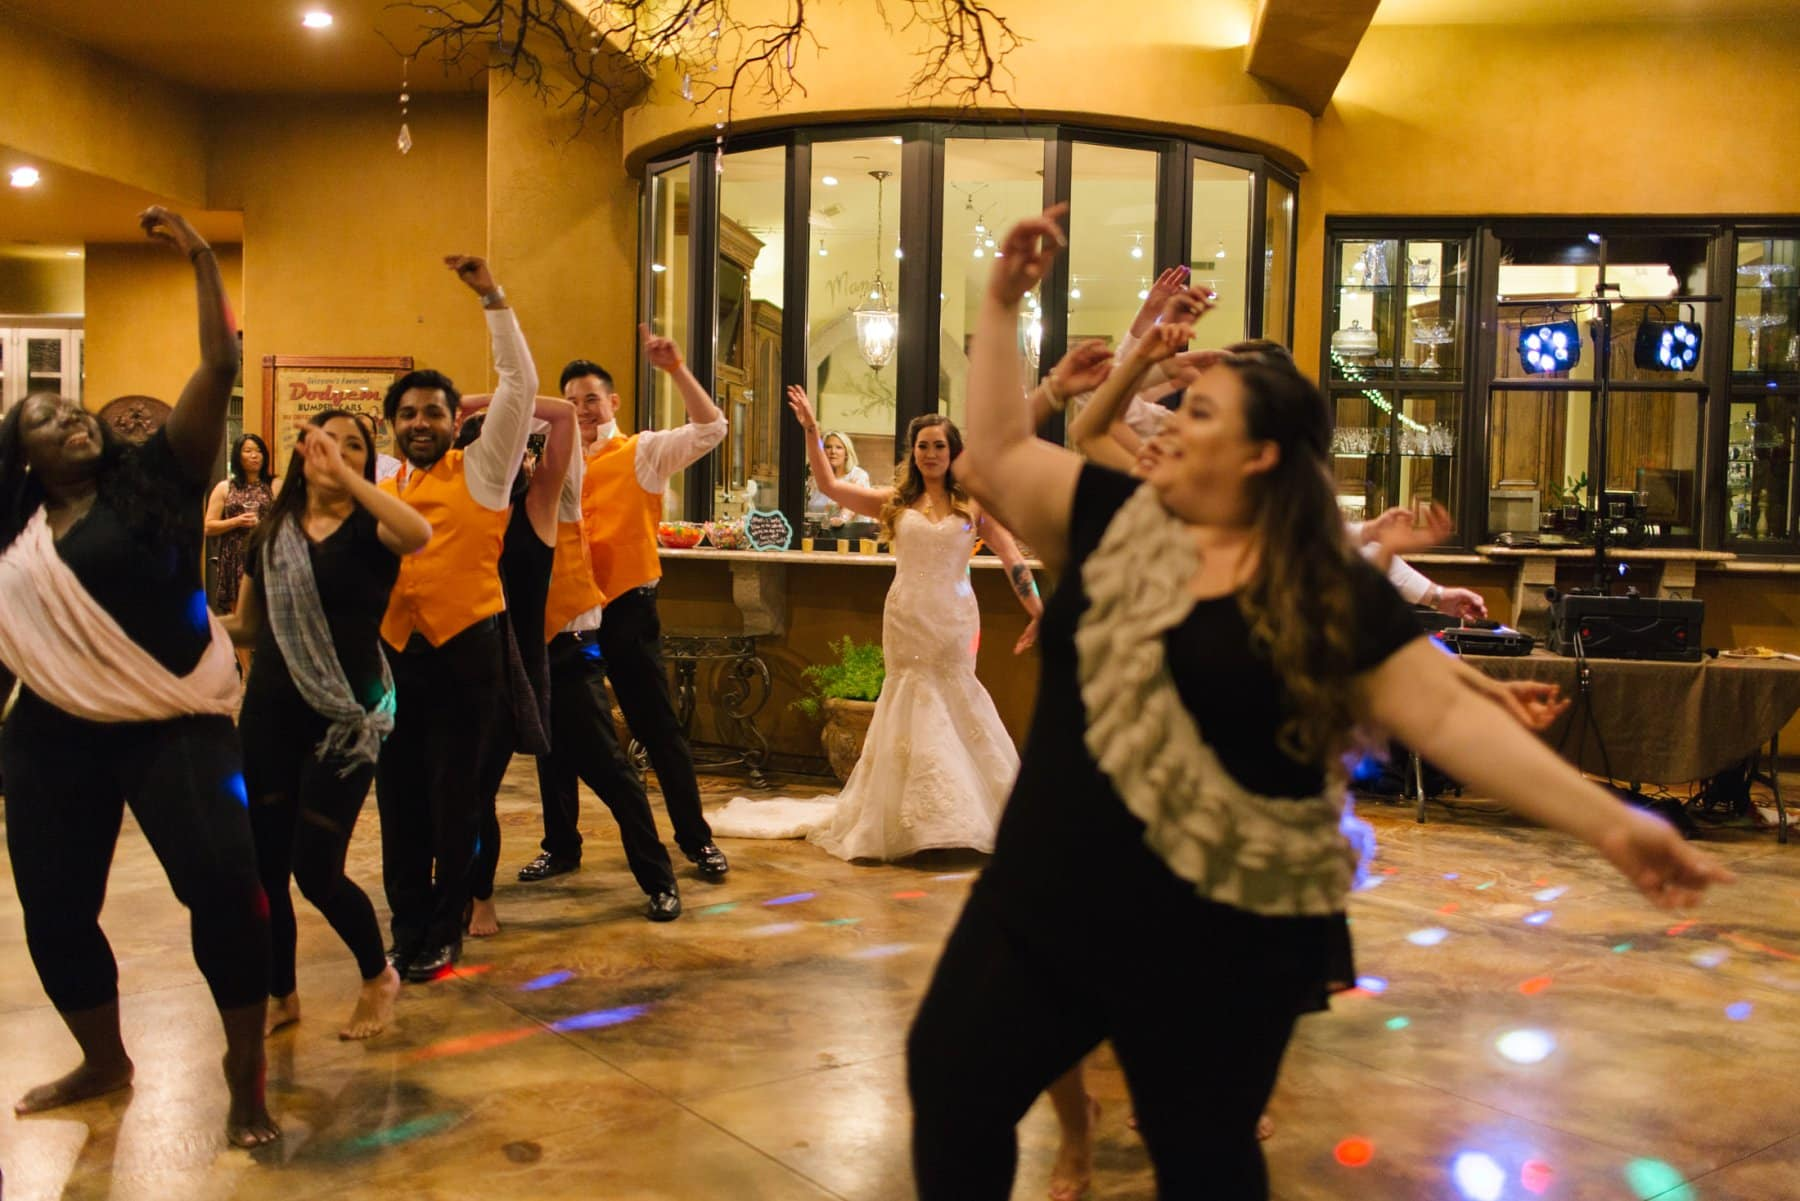 Bollywood style wedding party choreographed dance with bride for groom Phoenix South Mountain home wedding